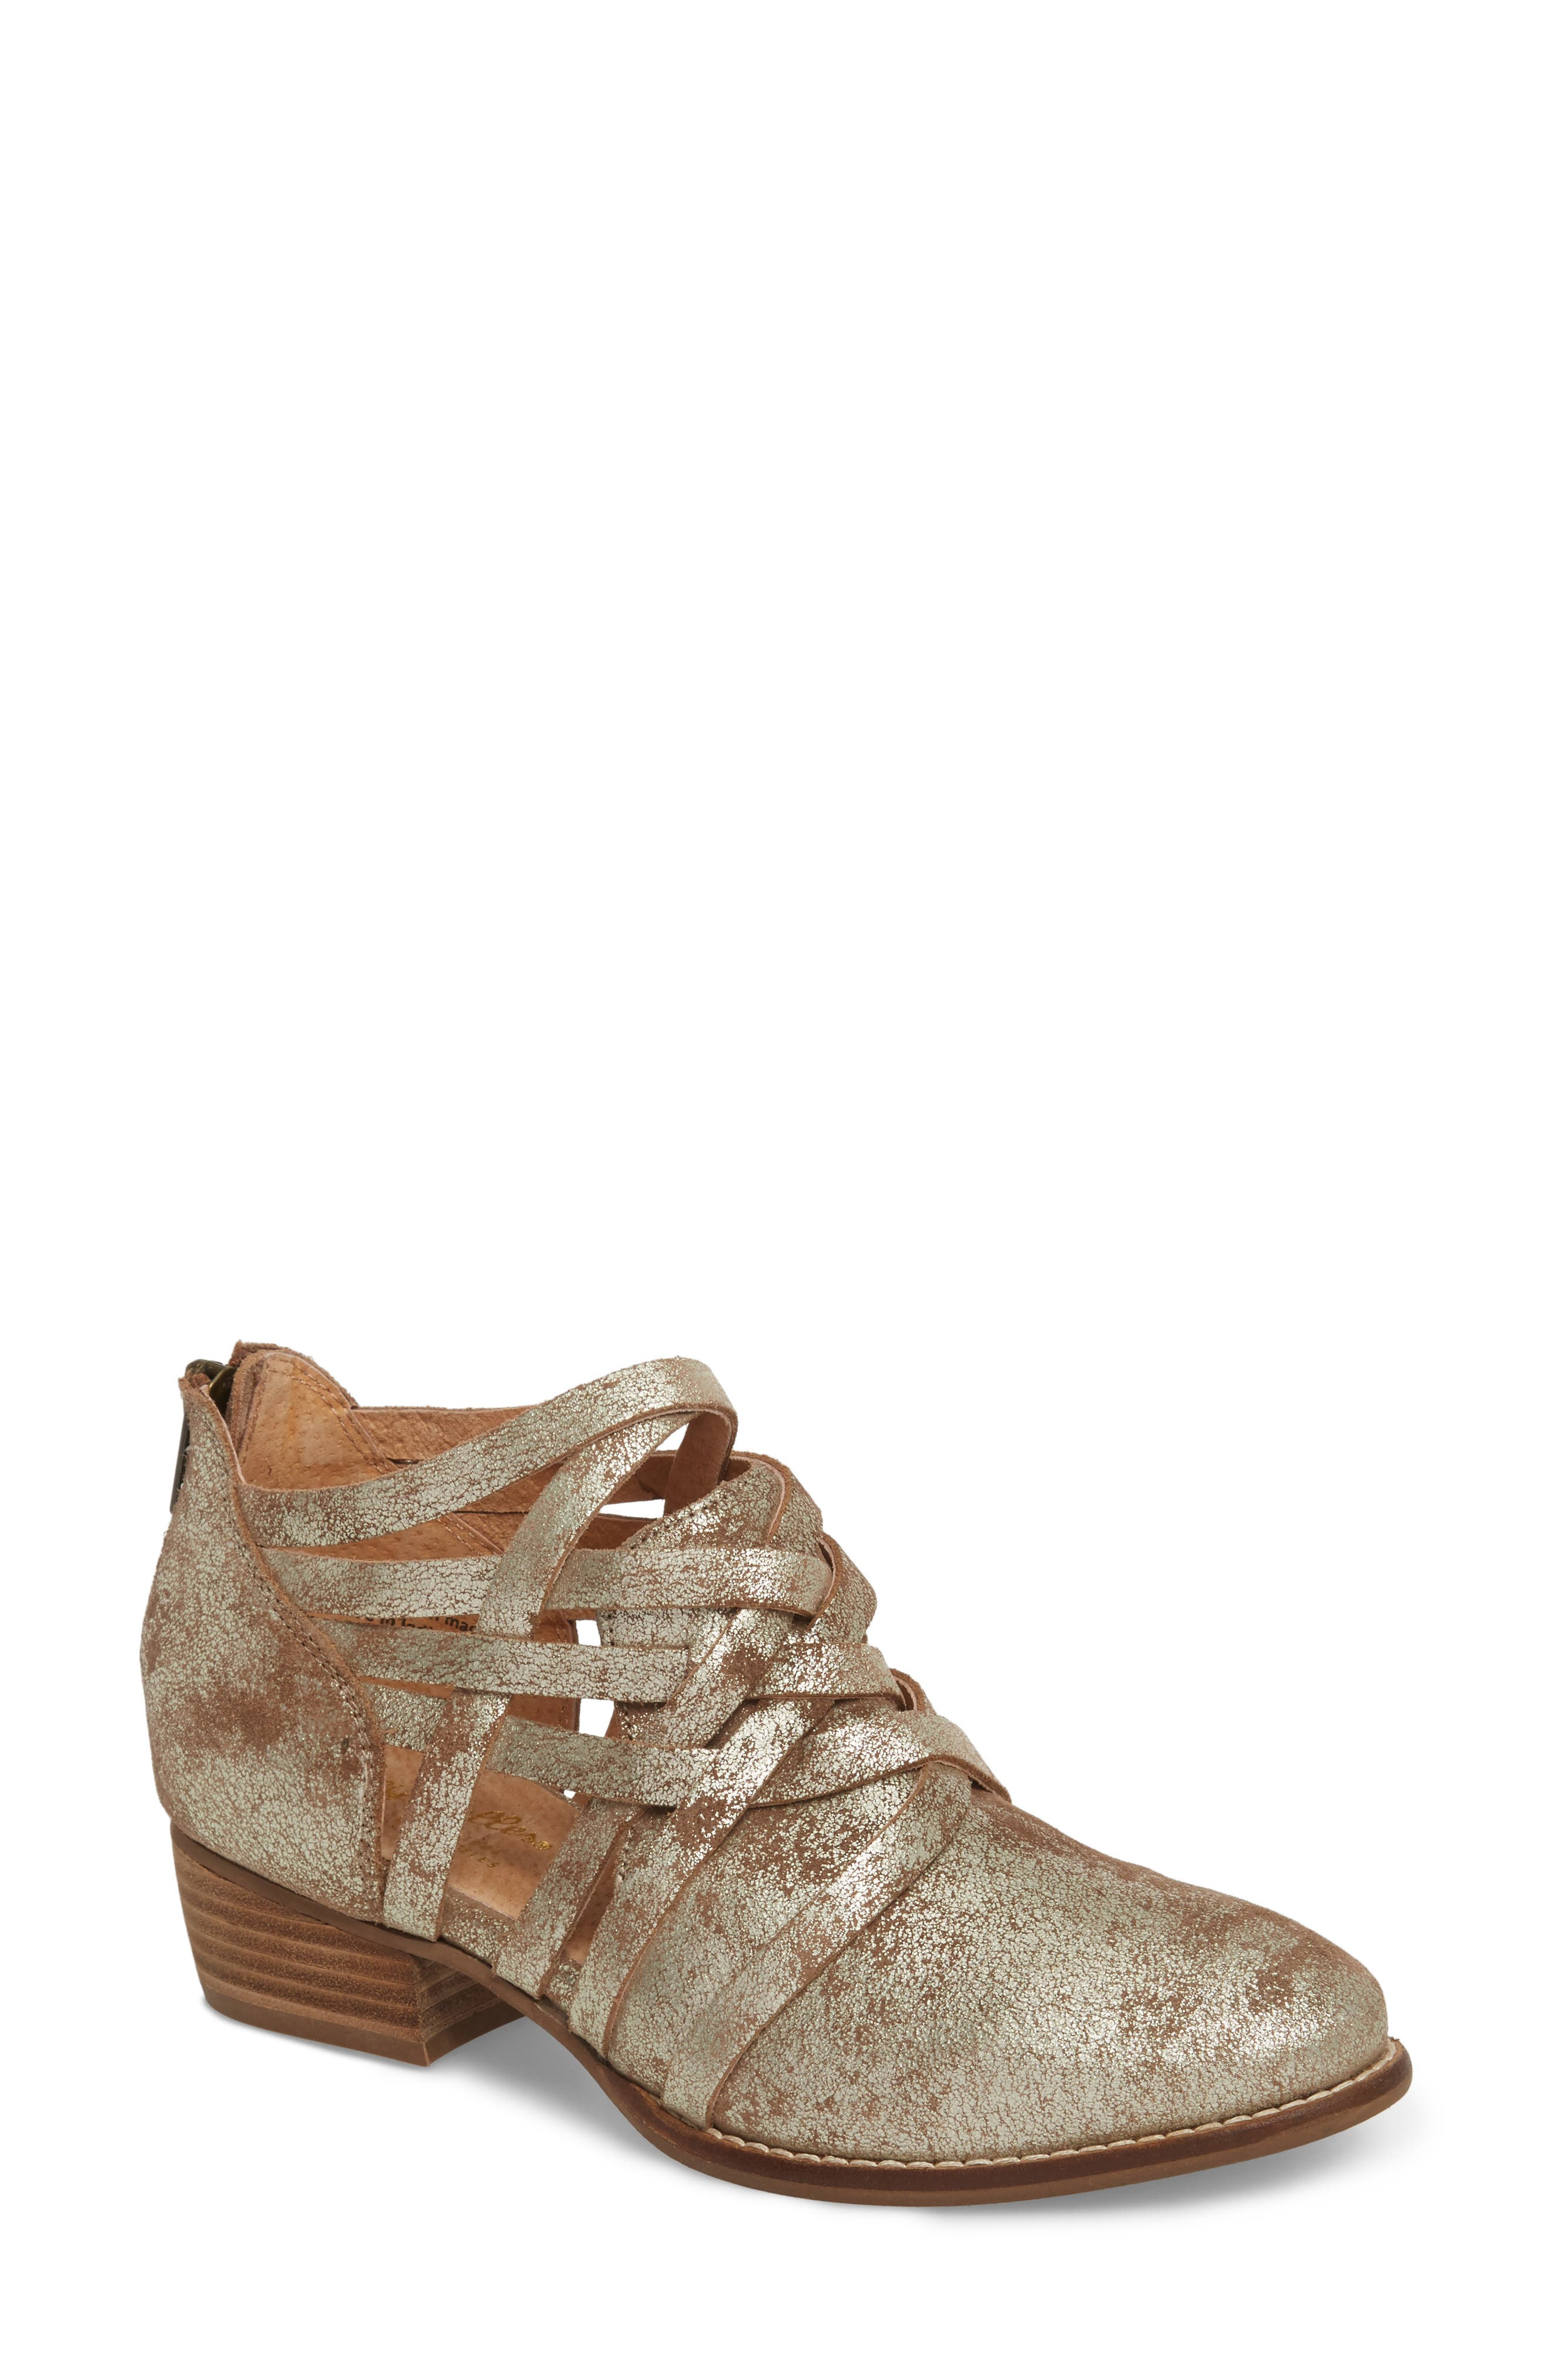 So Blue Cutout Bootie,                         Main,                         color, GOLD DISTRESSED LEATHER